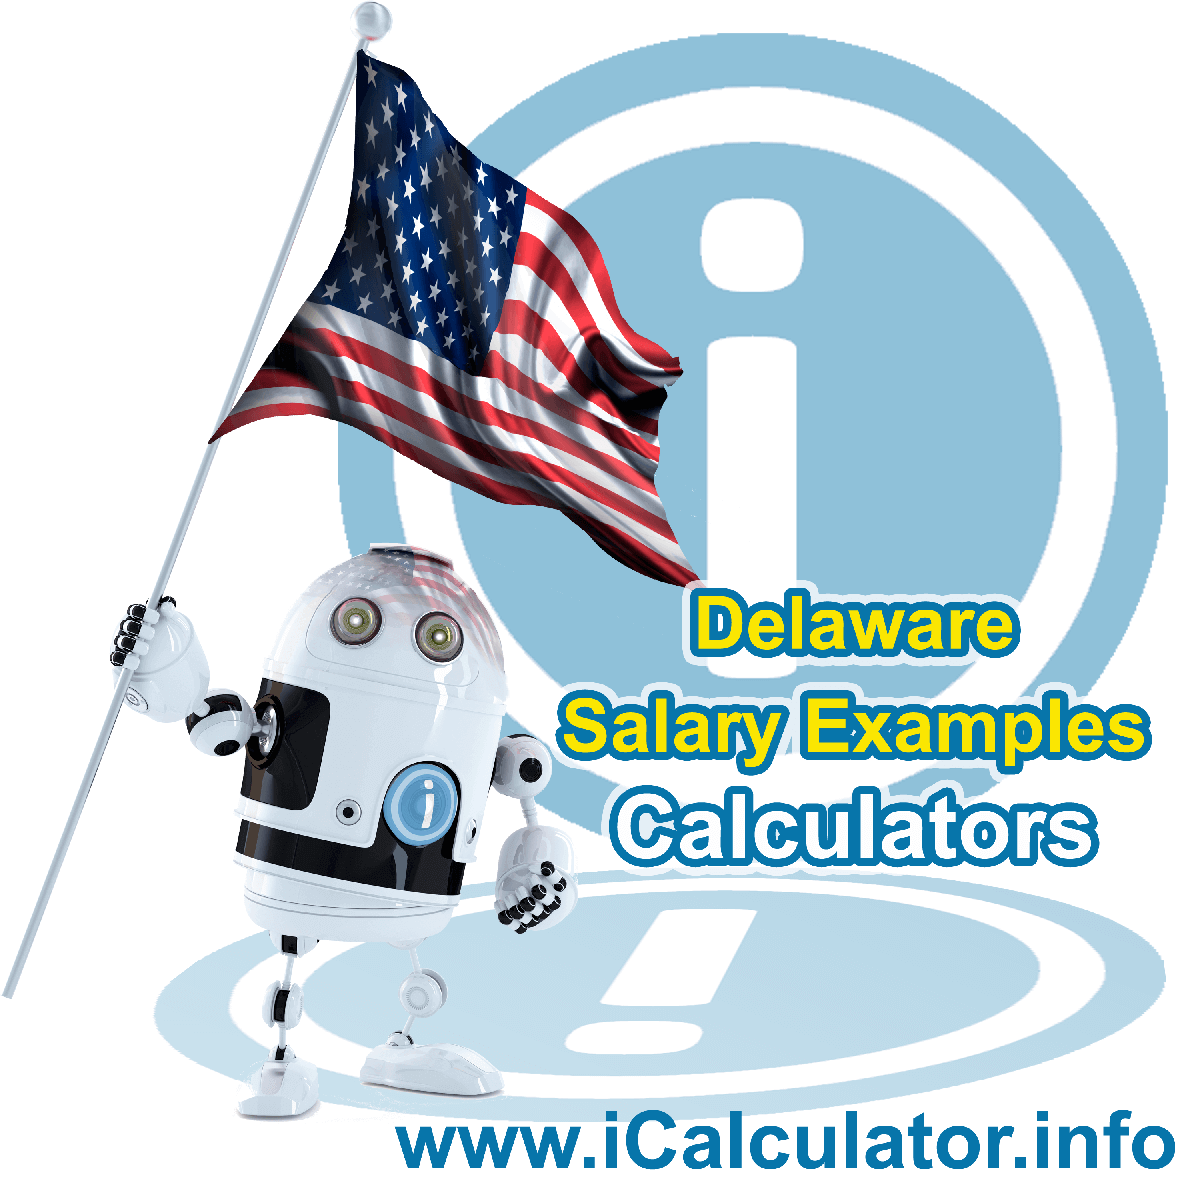 Delaware Salary Example for $170.00 in 2020 | iCalculator | $170.00 salary example for employee and employer paying Delaware State tincome taxes. Detailed salary after tax calculation including Delaware State Tax, Federal State Tax, Medicare Deductions, Social Security, Capital Gains and other income tax and salary deductions complete with supporting Delaware state tax tables